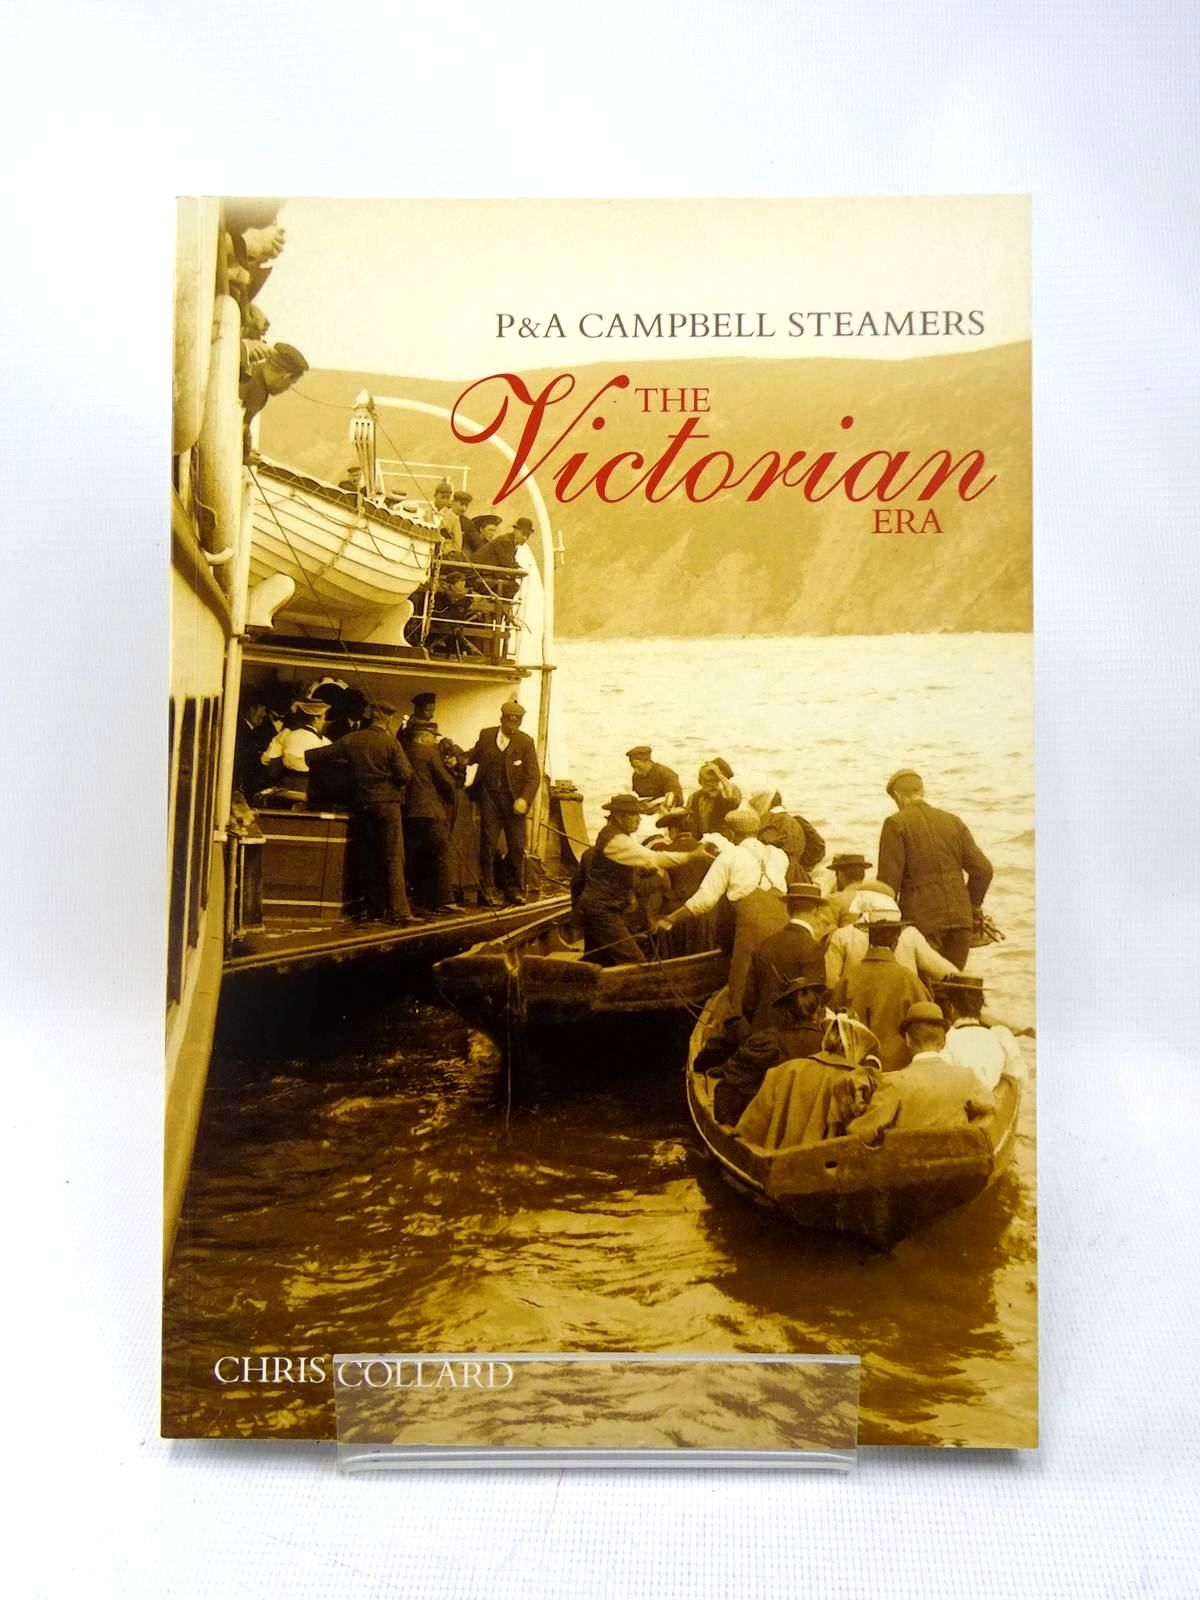 Photo of P&A CAMPBELL STEAMERS THE VICTORIAN ERA written by Collard, Chris published by Tempus (STOCK CODE: 1317464)  for sale by Stella & Rose's Books